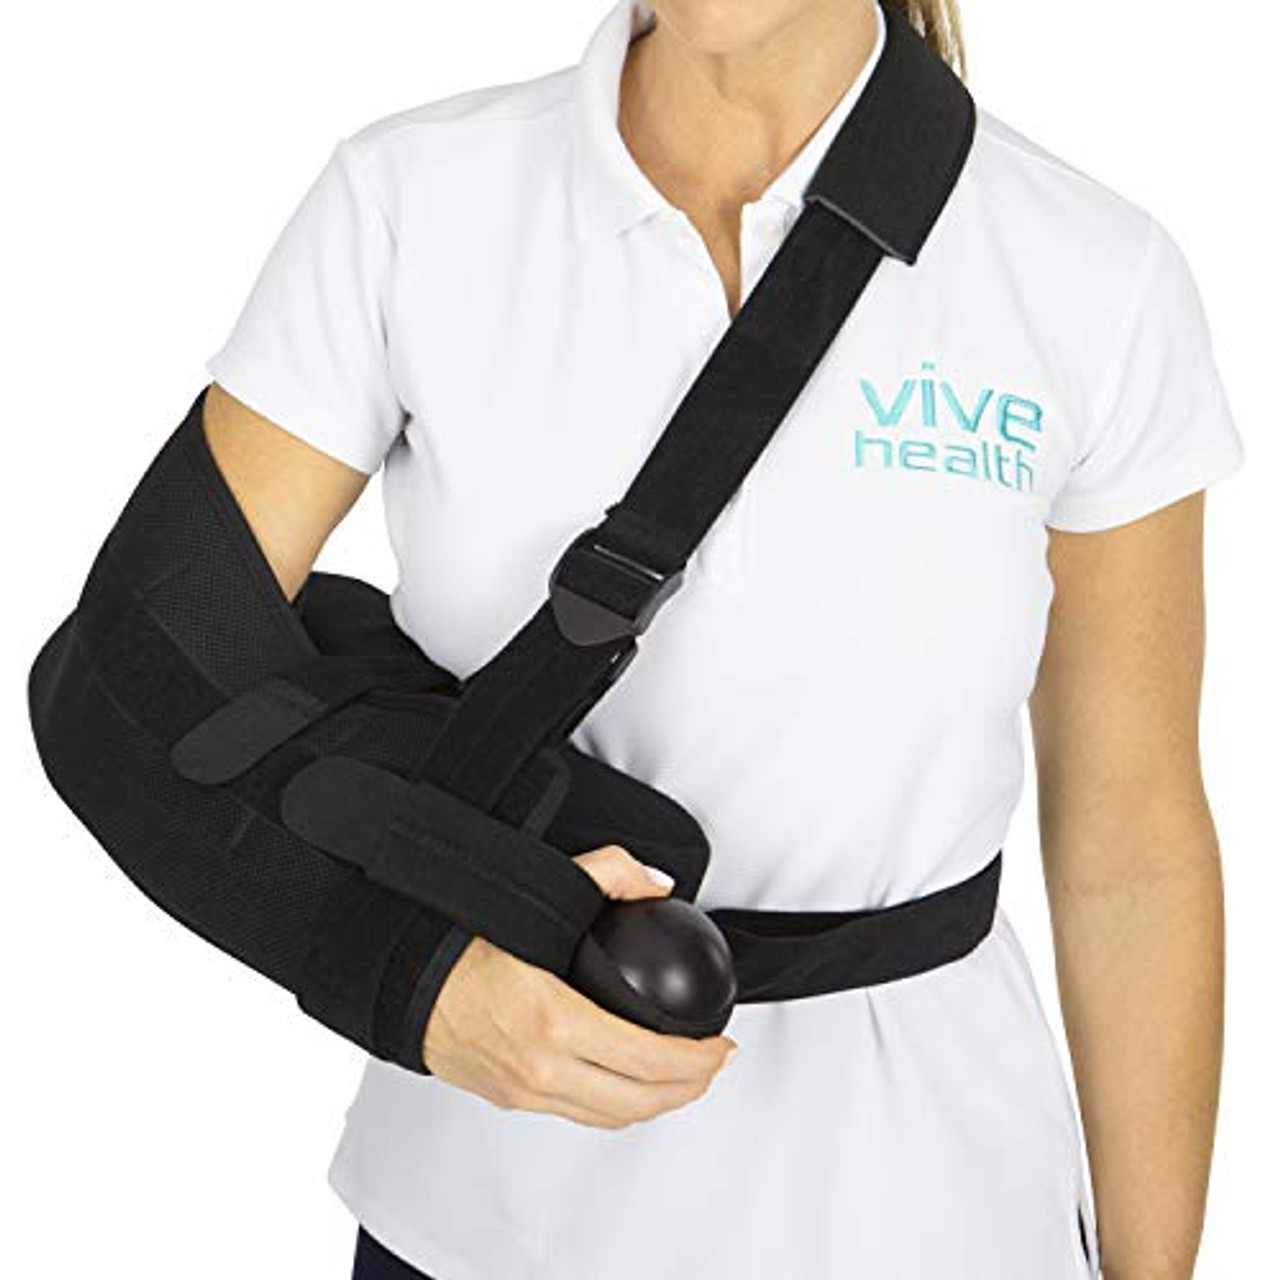 pain relief arm pillow for rotator cuff